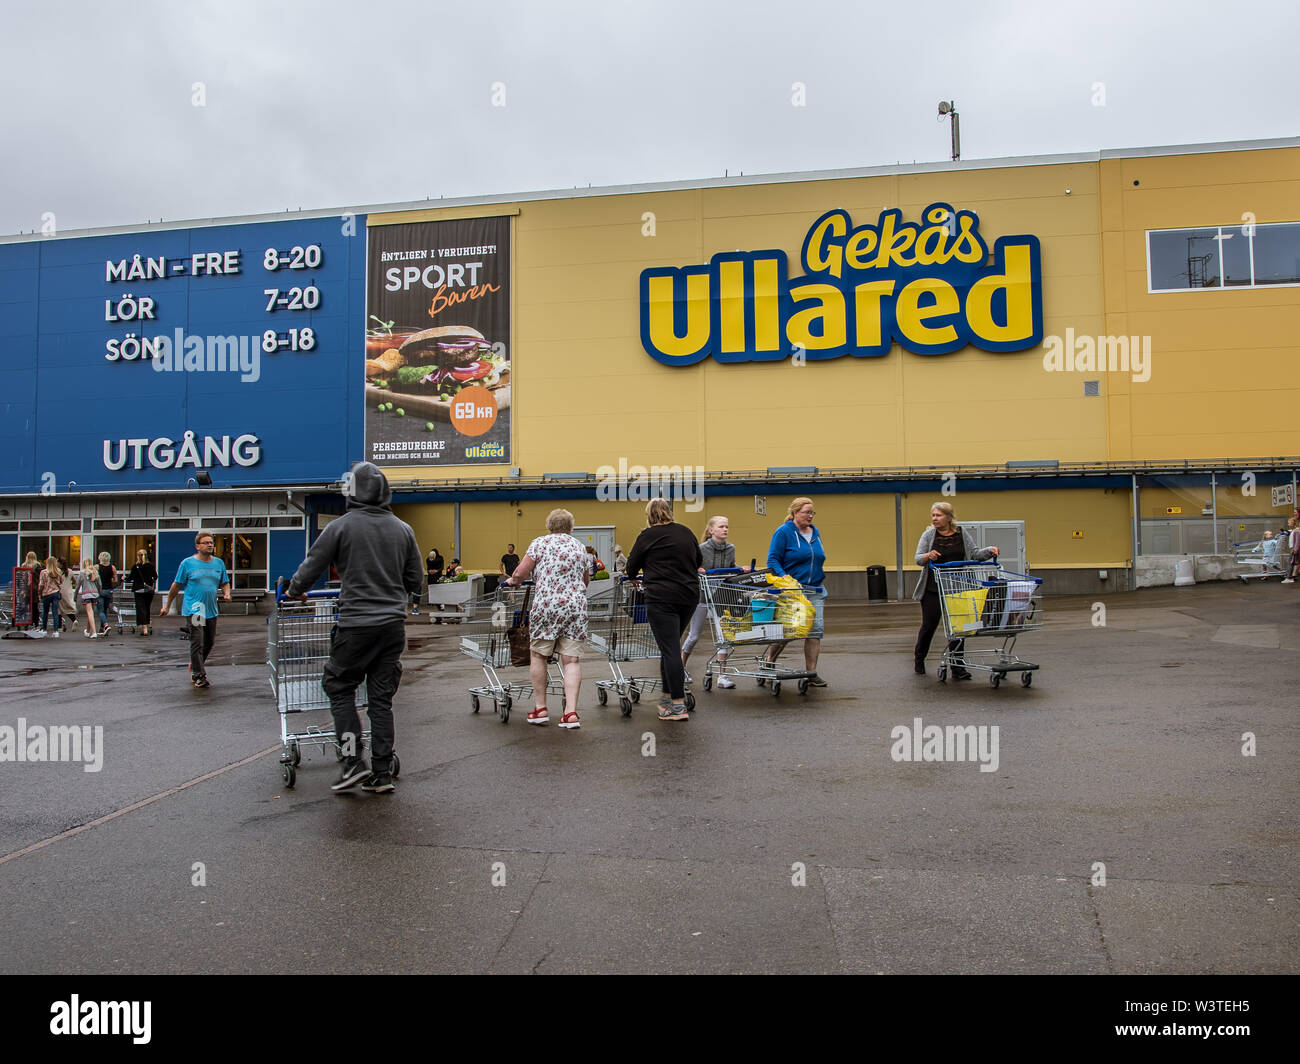 People with shopping carts walking to the entrance of the GeKås, Ullared, Sweden, June 16, 2019 Stock Photo